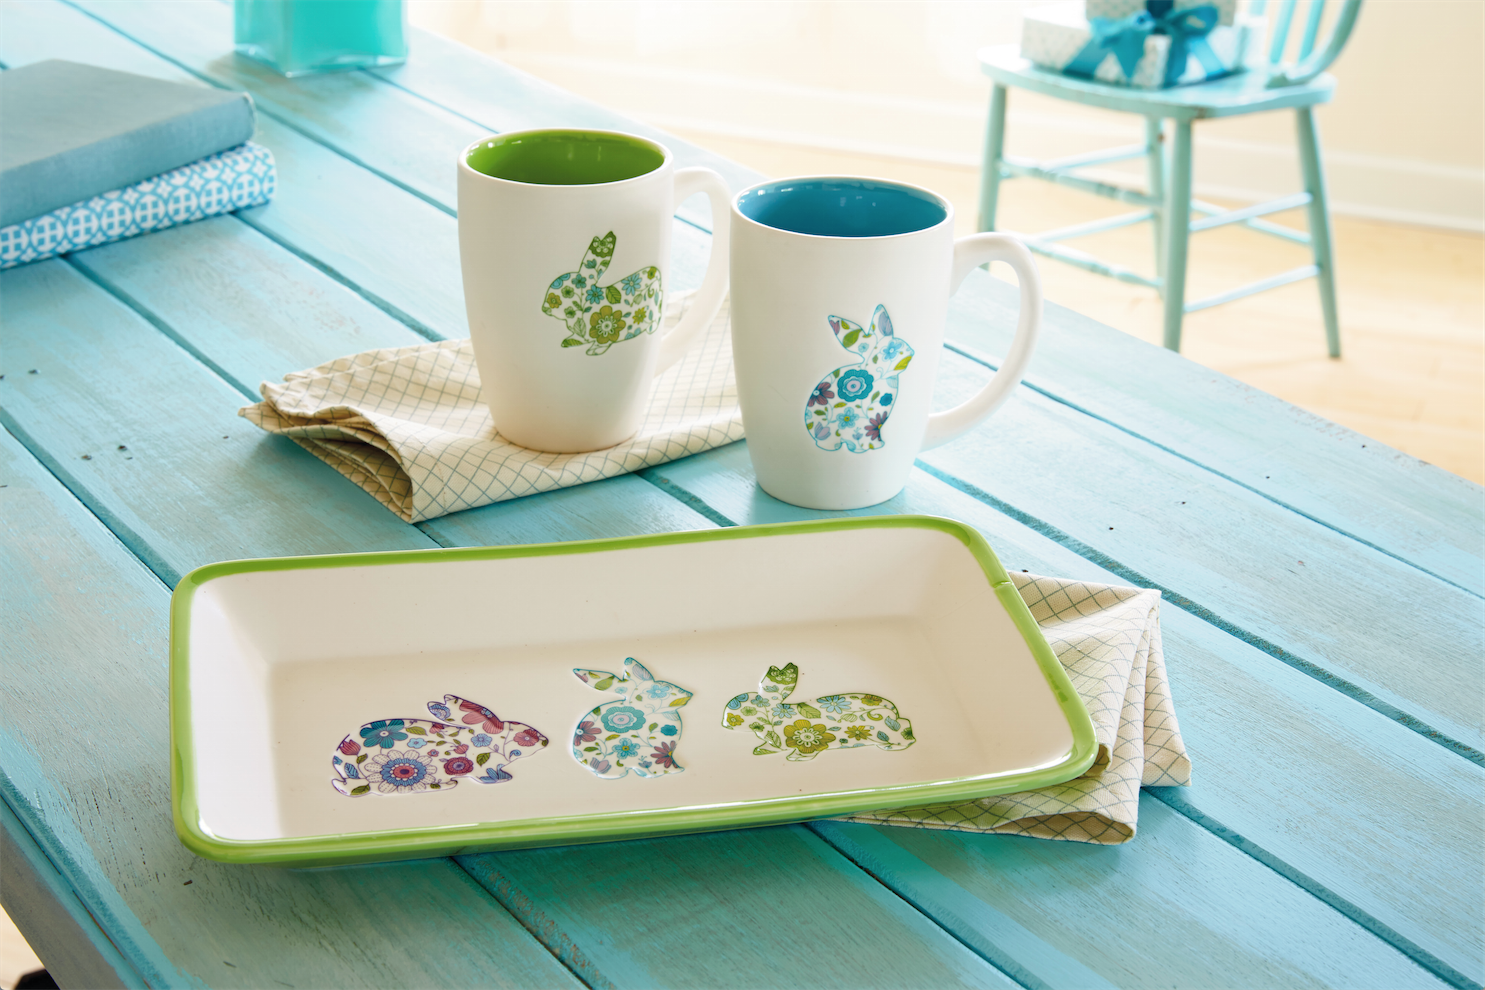 Hallmark Easter Must-Haves - Bunny Mugs and Serving Platter